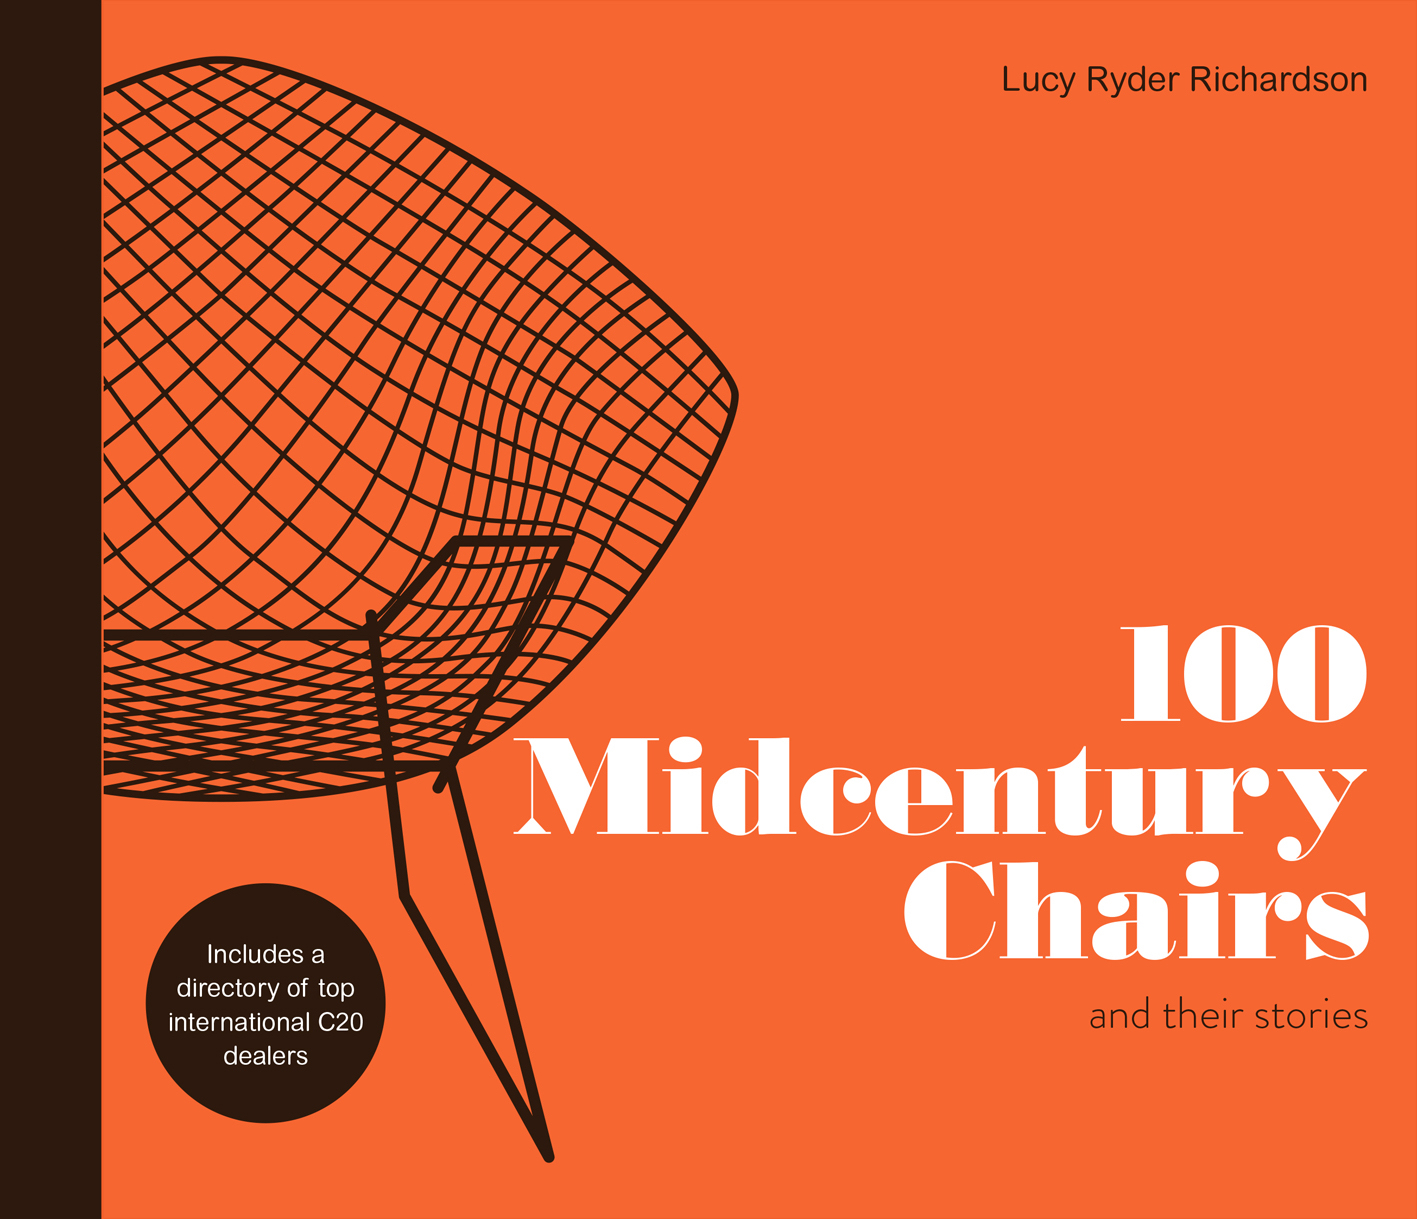 100 midcentury chairs and their stories around dulwich